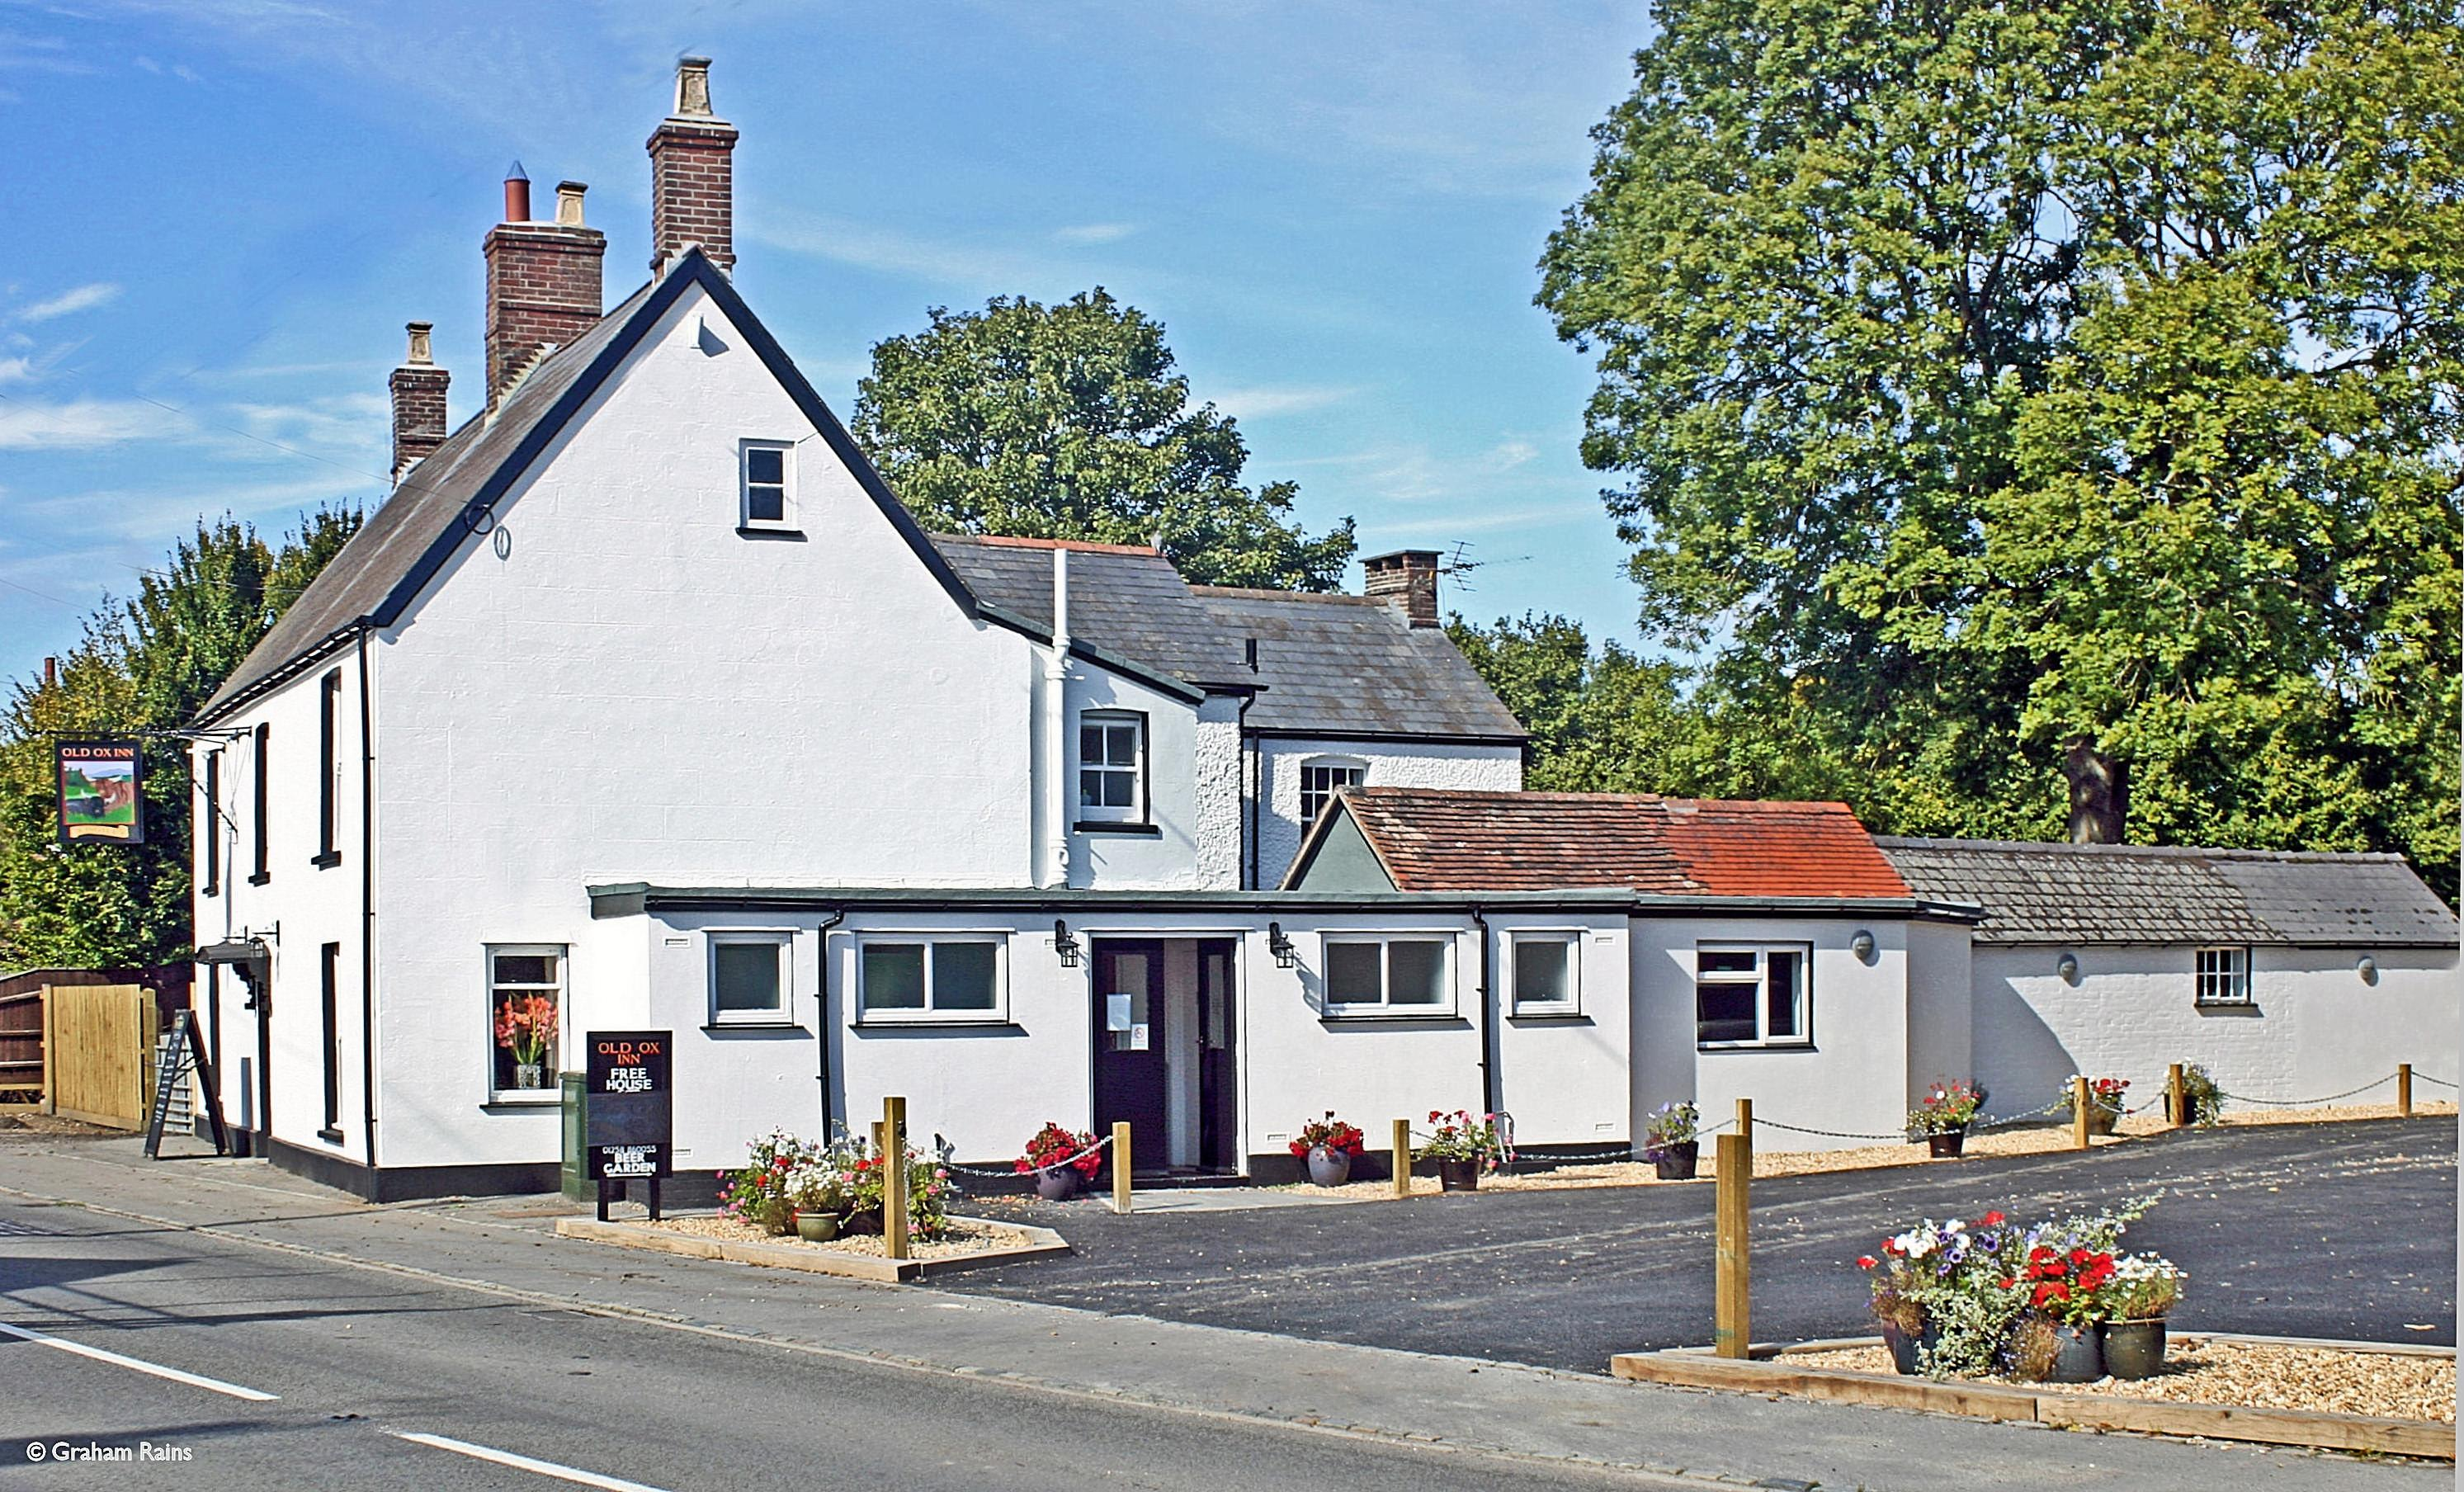 The Old Ox Inn